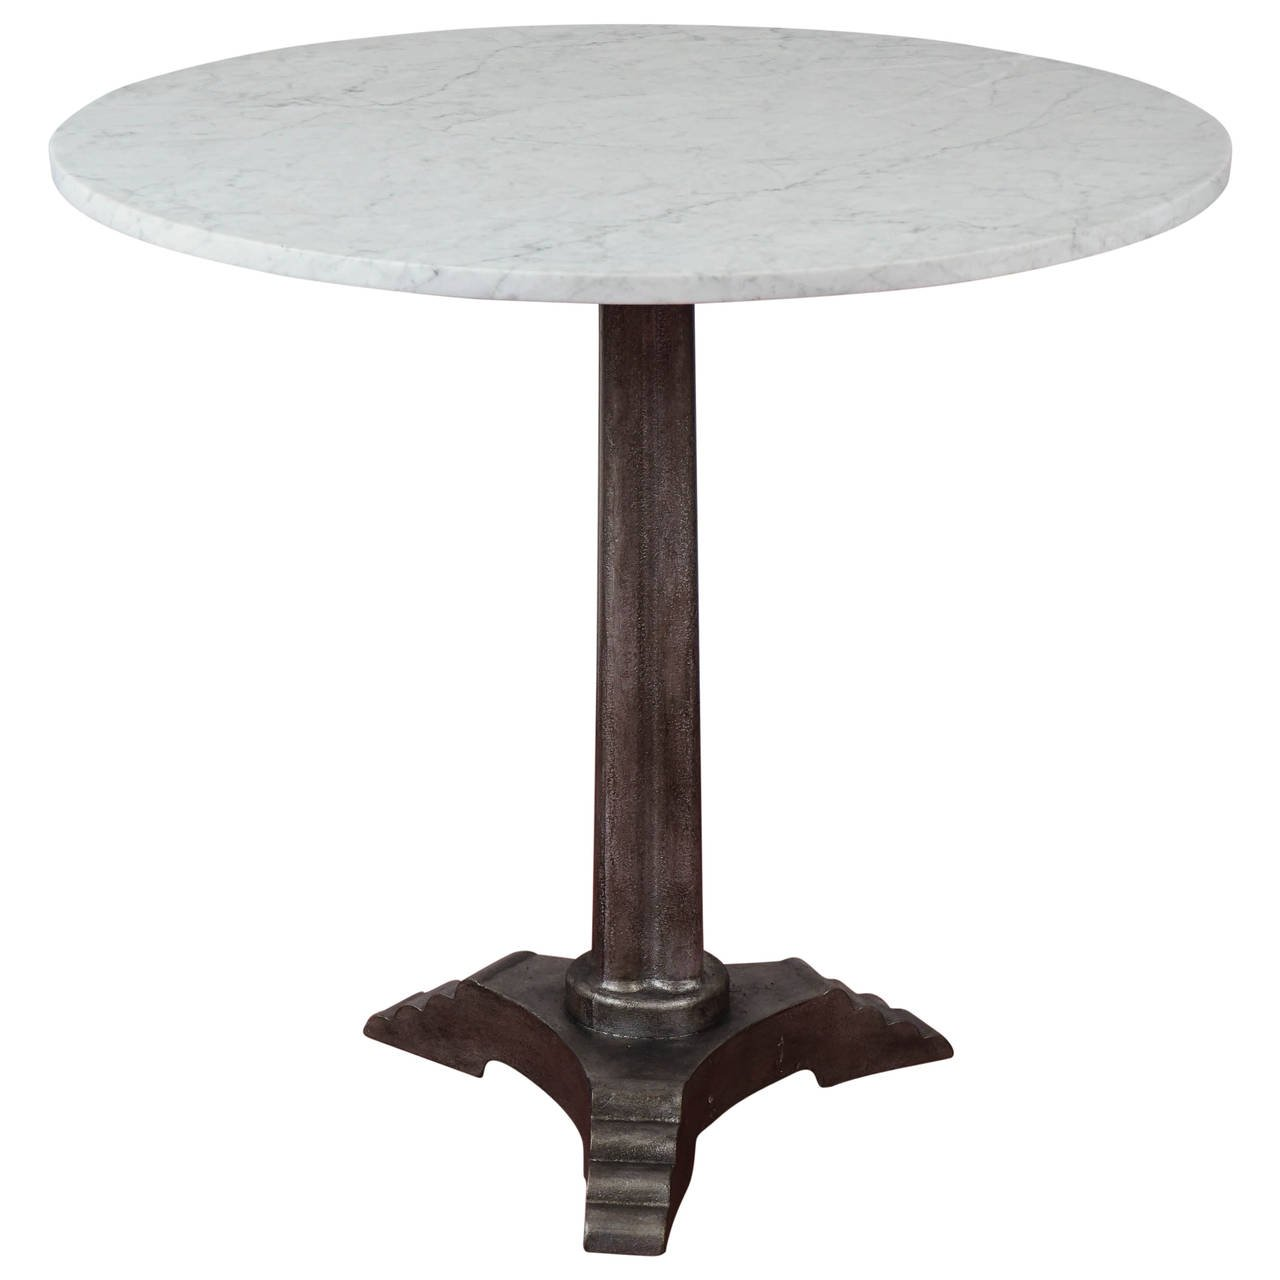 french art deco marble top bistro table accent for lounge covers target shaped side living room packages trunk wine rack kids drum stool cast aluminium garden furniture cherry